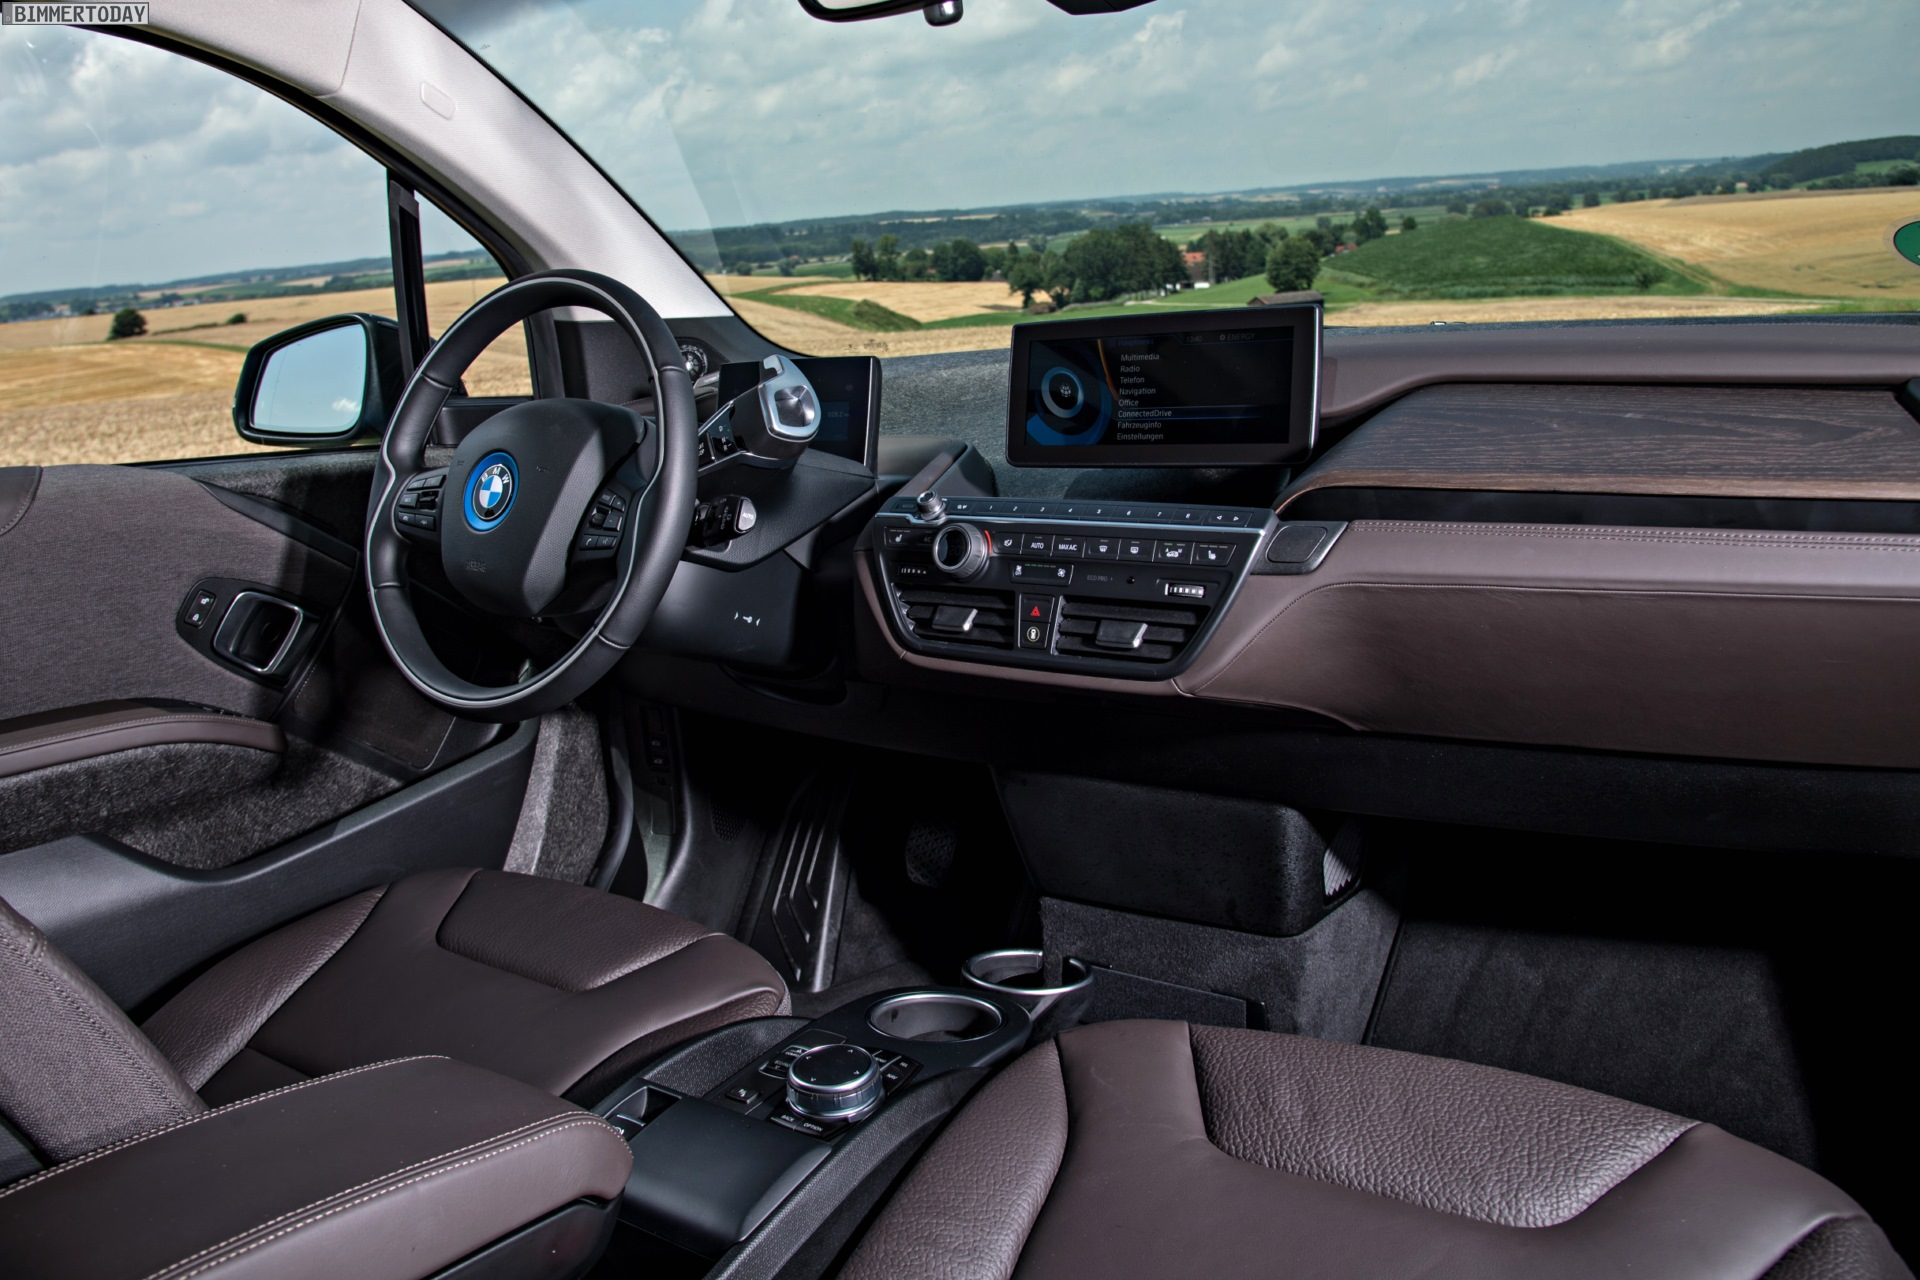 Bmw I3 May Have The Coolest Car Interior